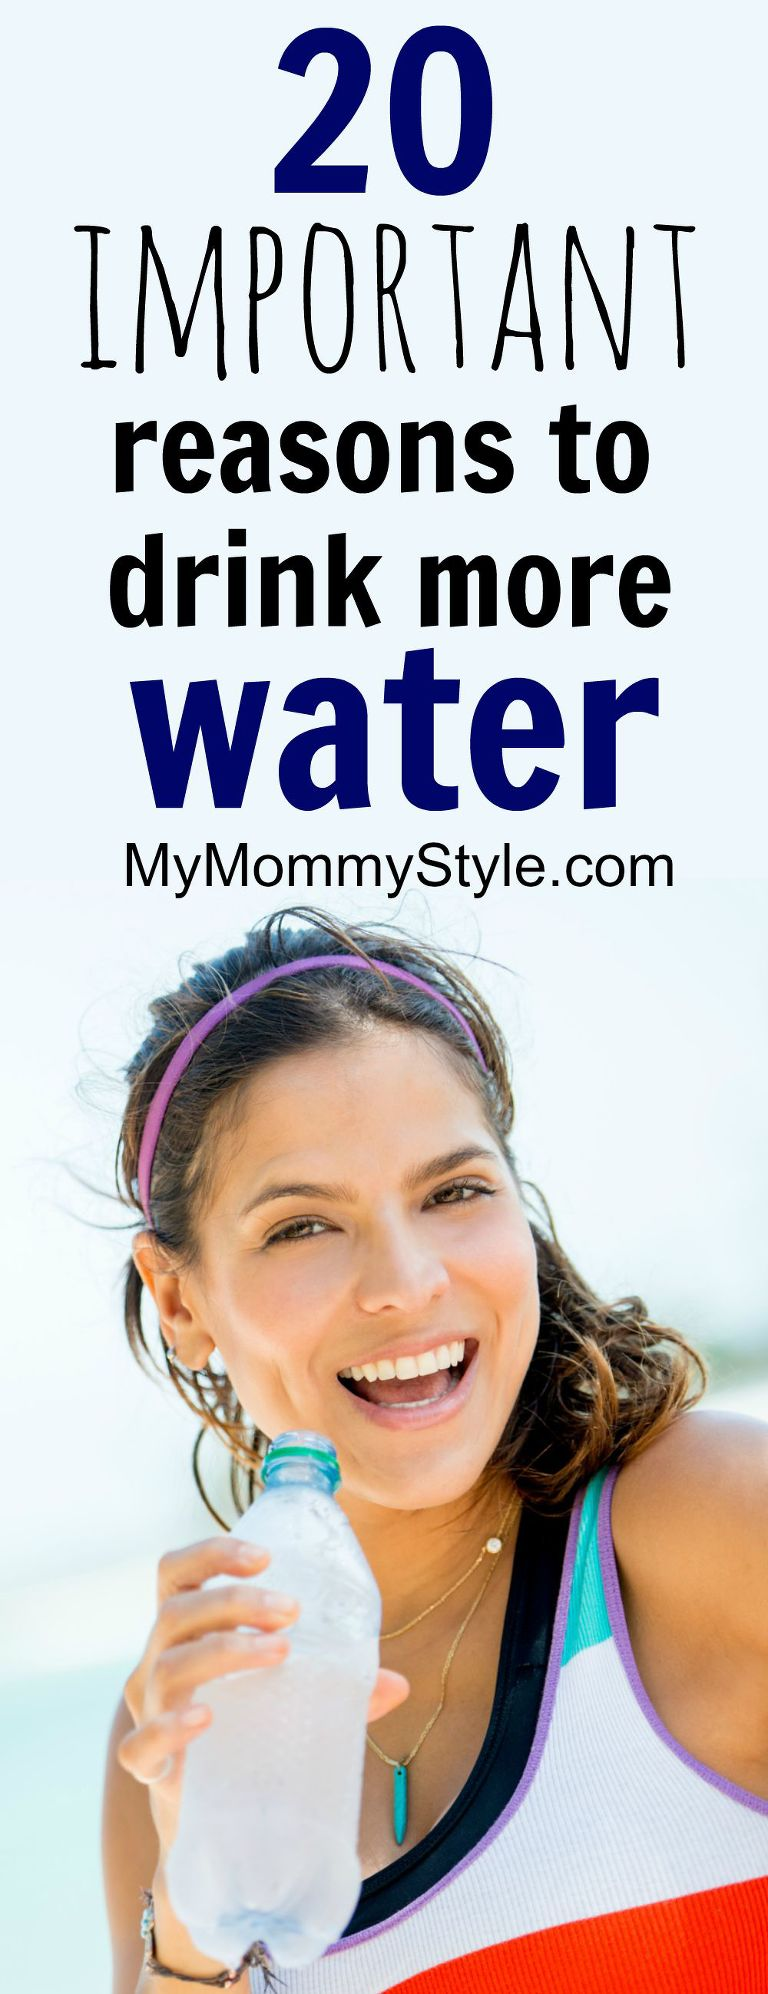 20 important reasons to drink more water